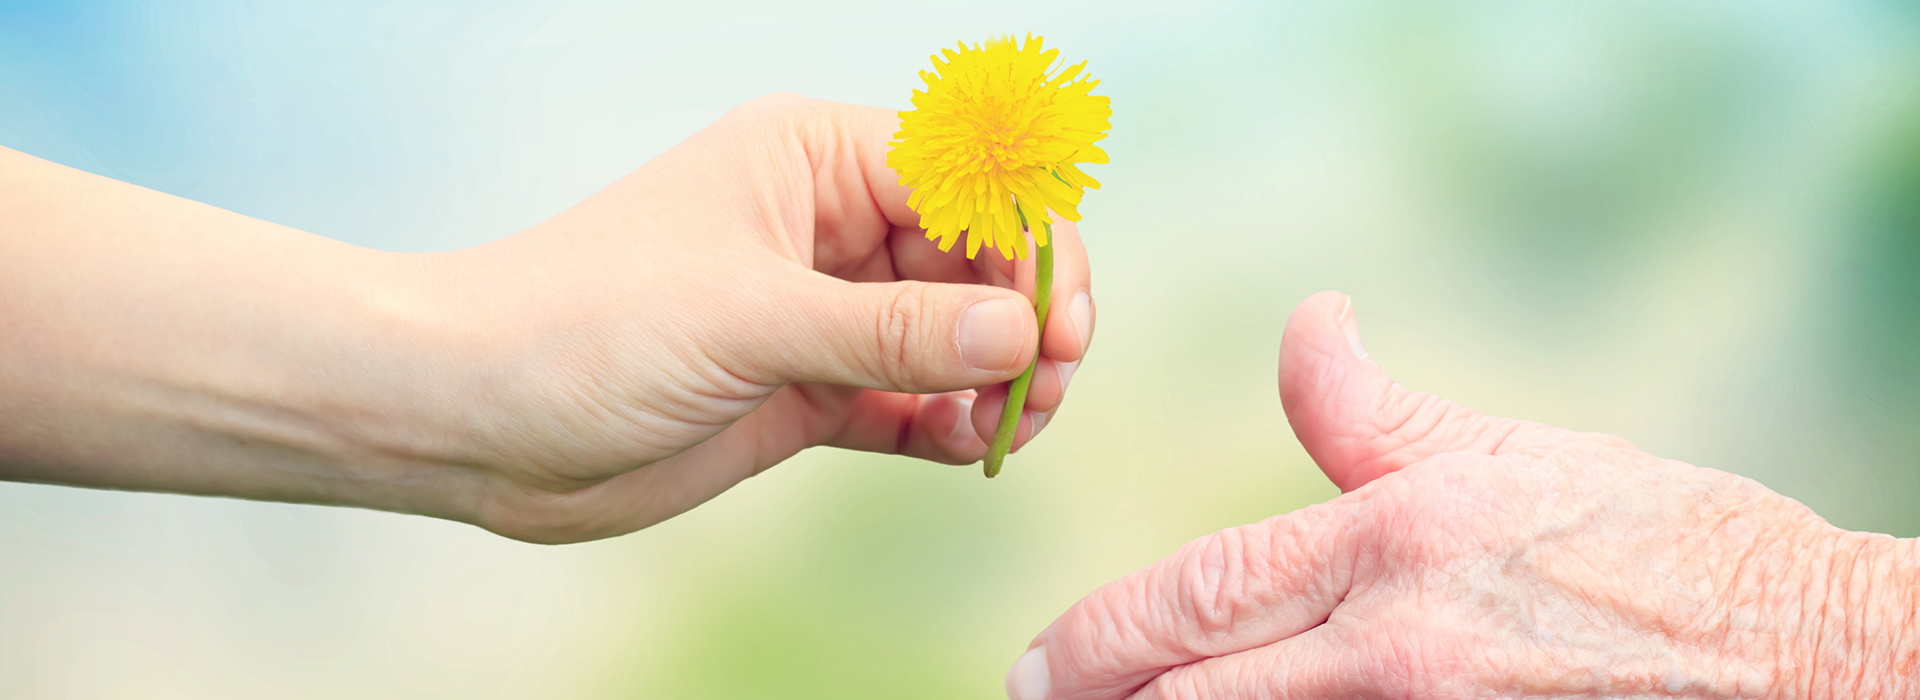 image of a young person giving a yellow flower to a senior